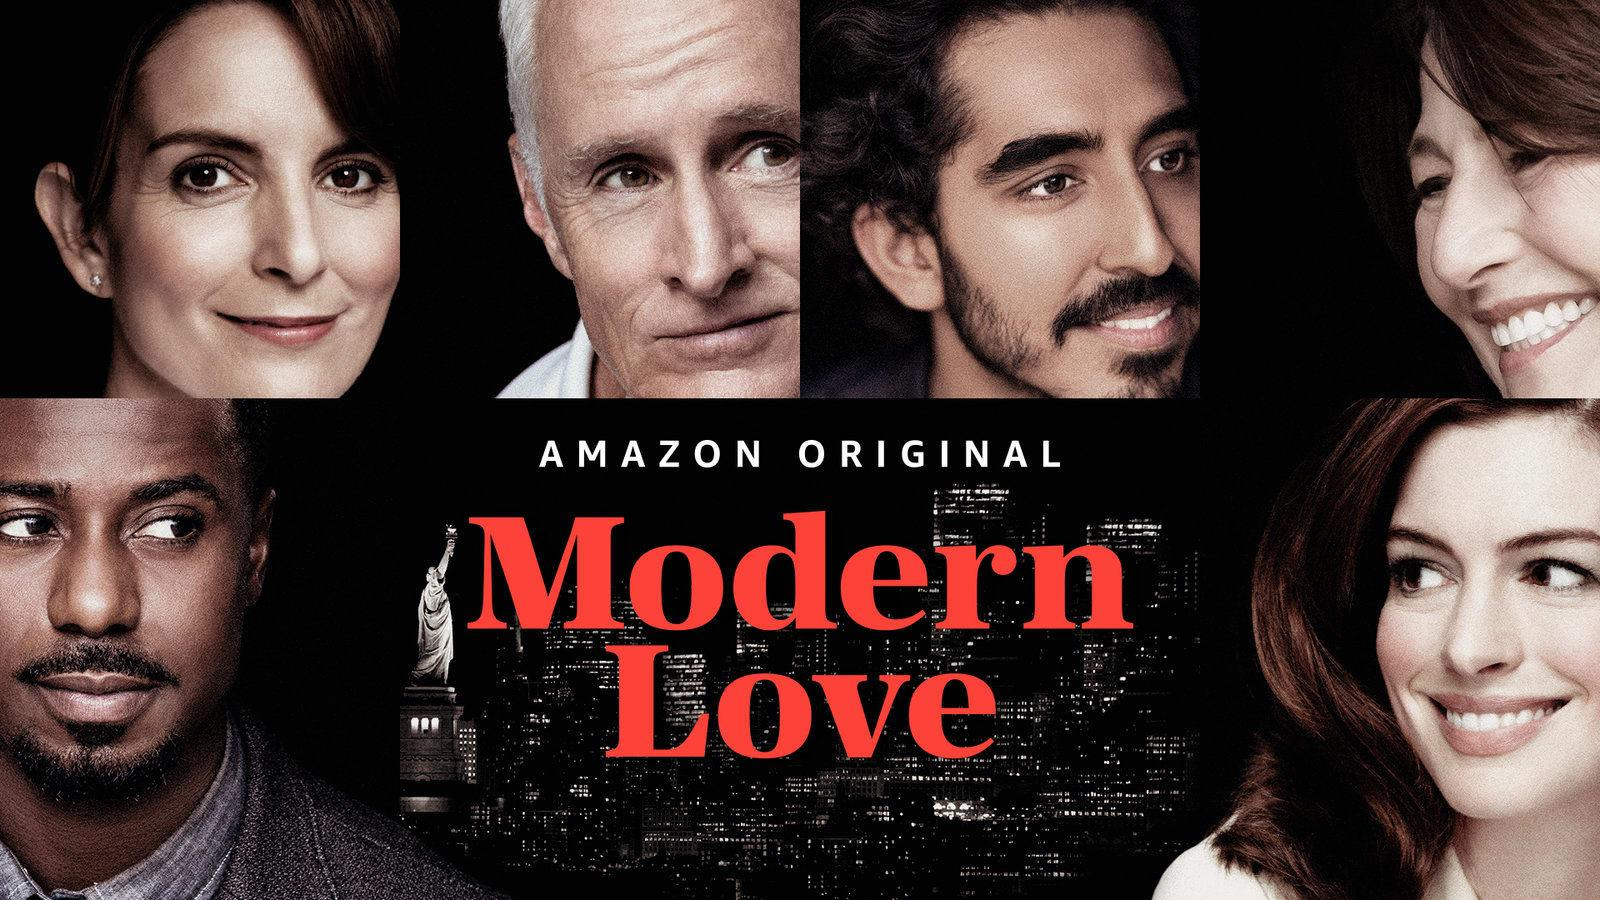 Amazon Prime Video Is Back With Another Season Of Modern Love!